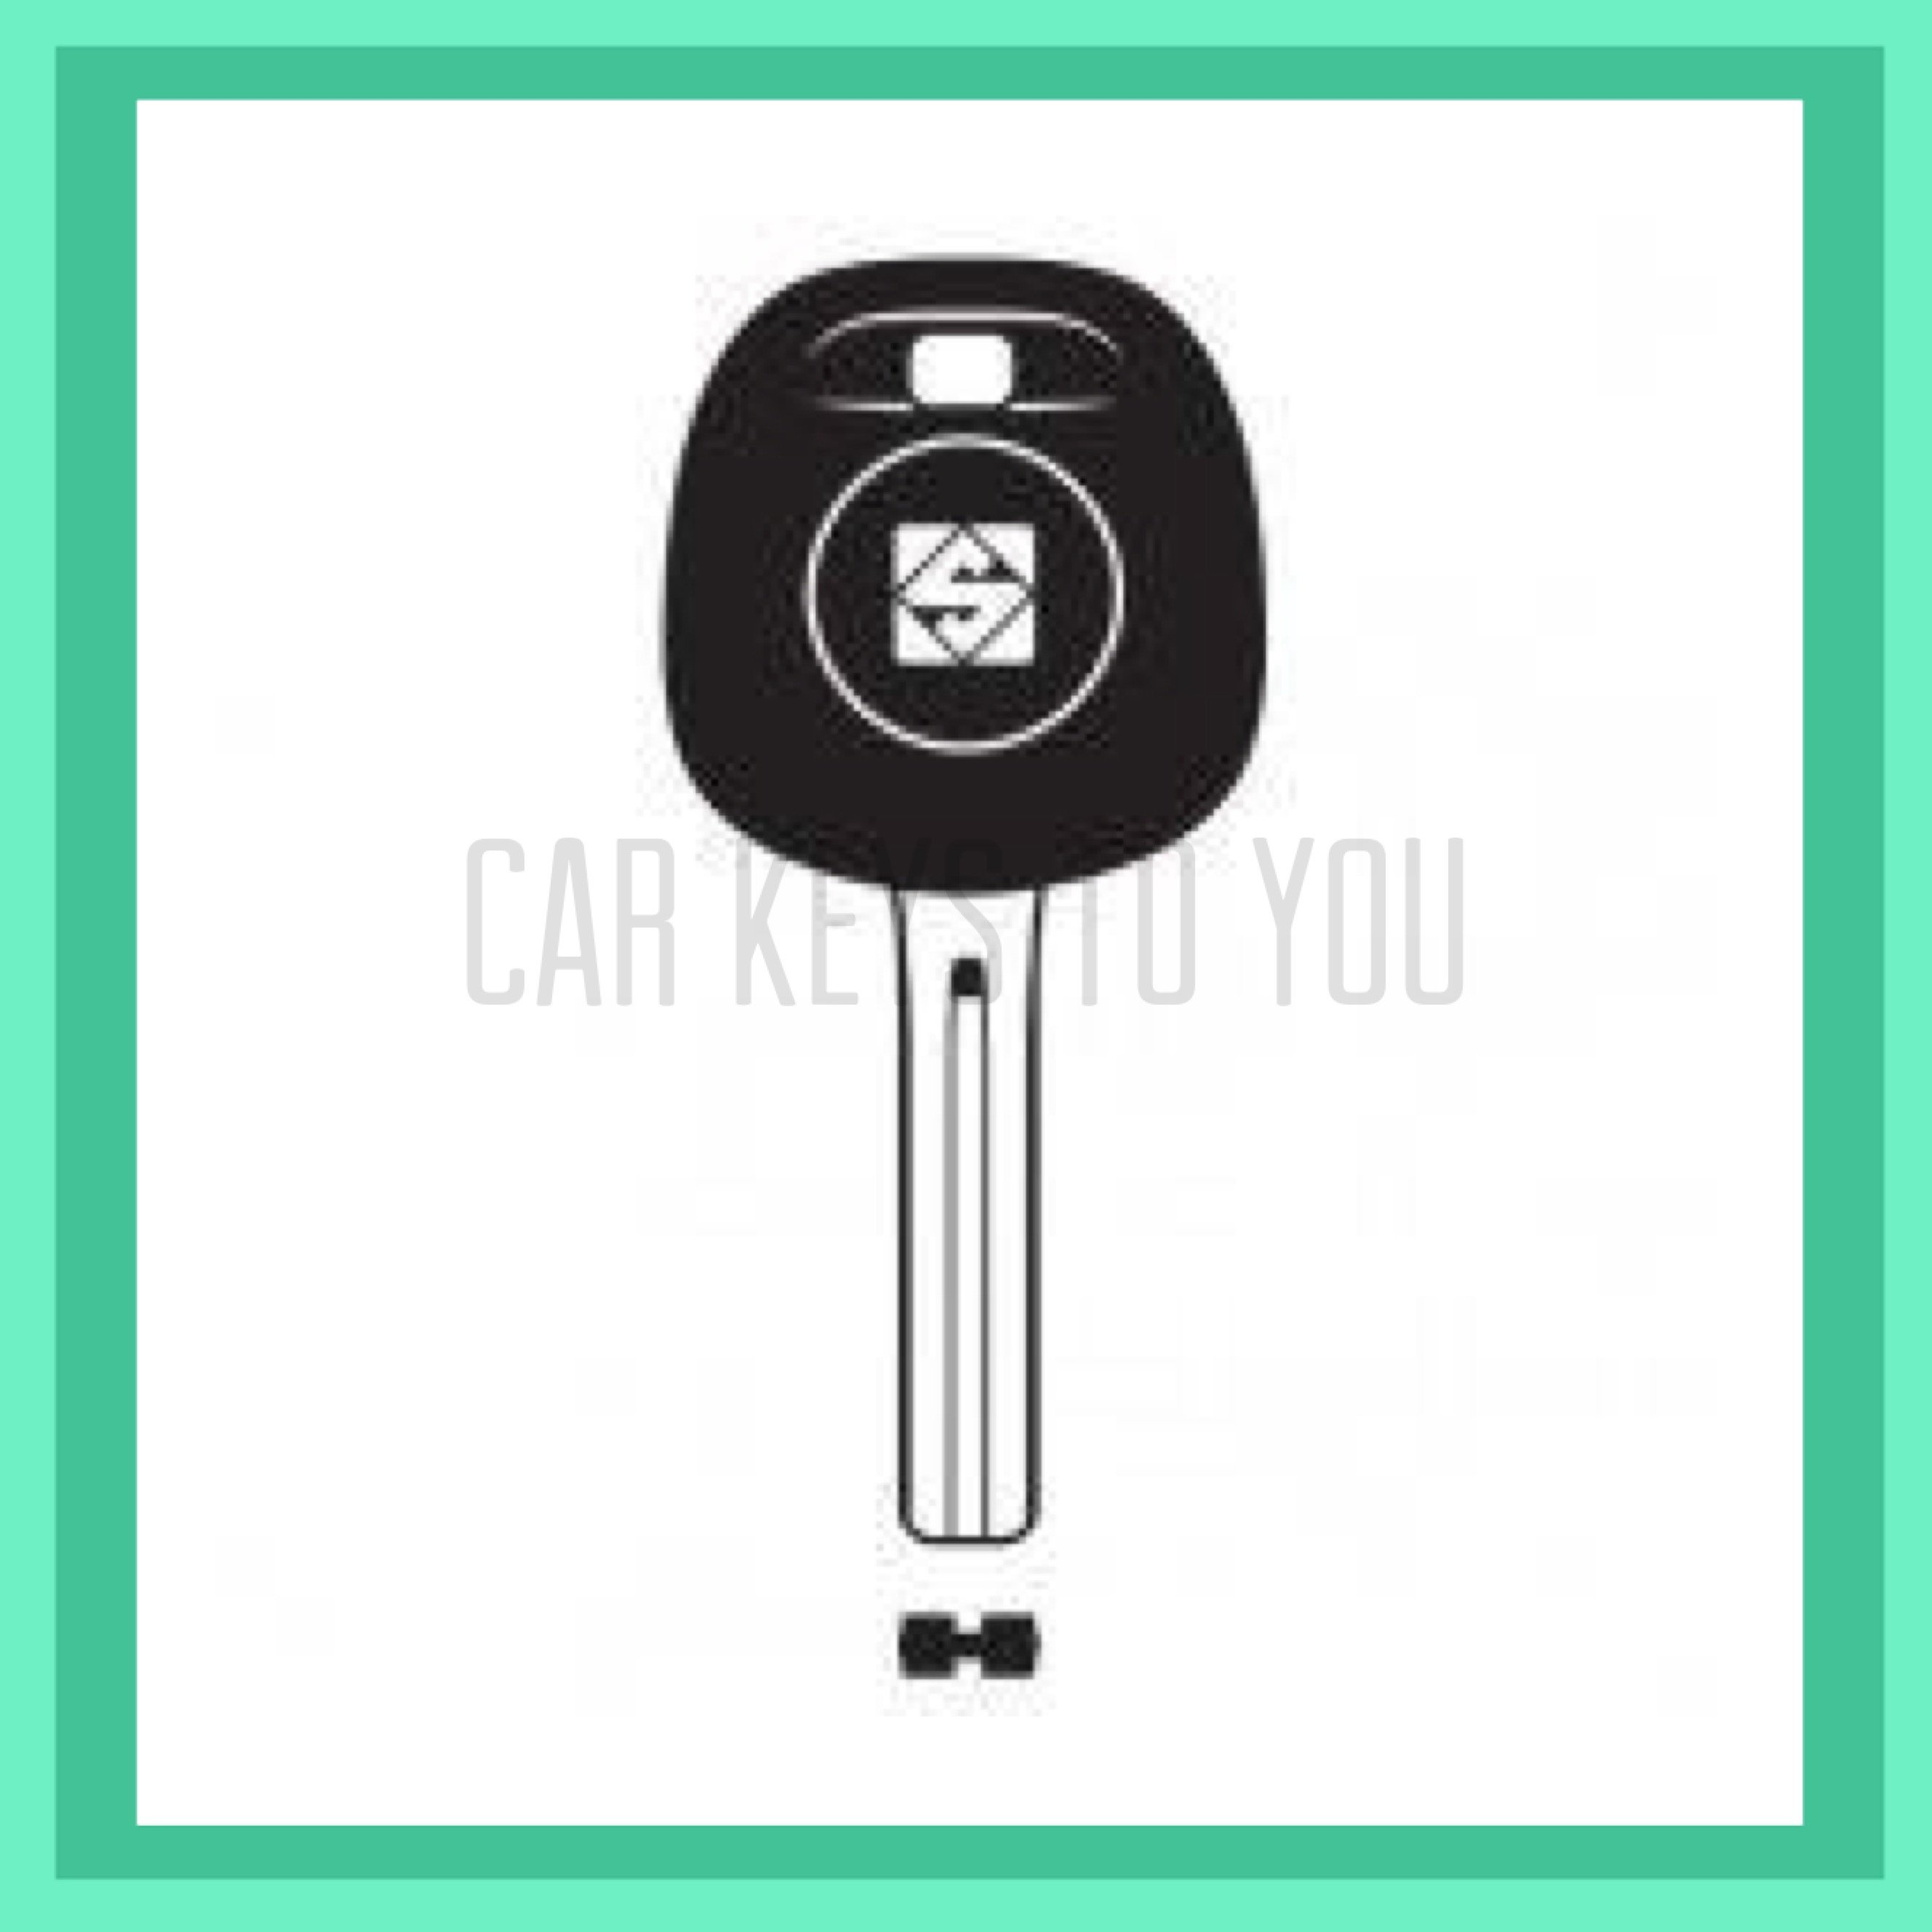 Toyota Landcruiser Car Key and Remote, Suit HDJ100/UZJ100 2002 - 2007